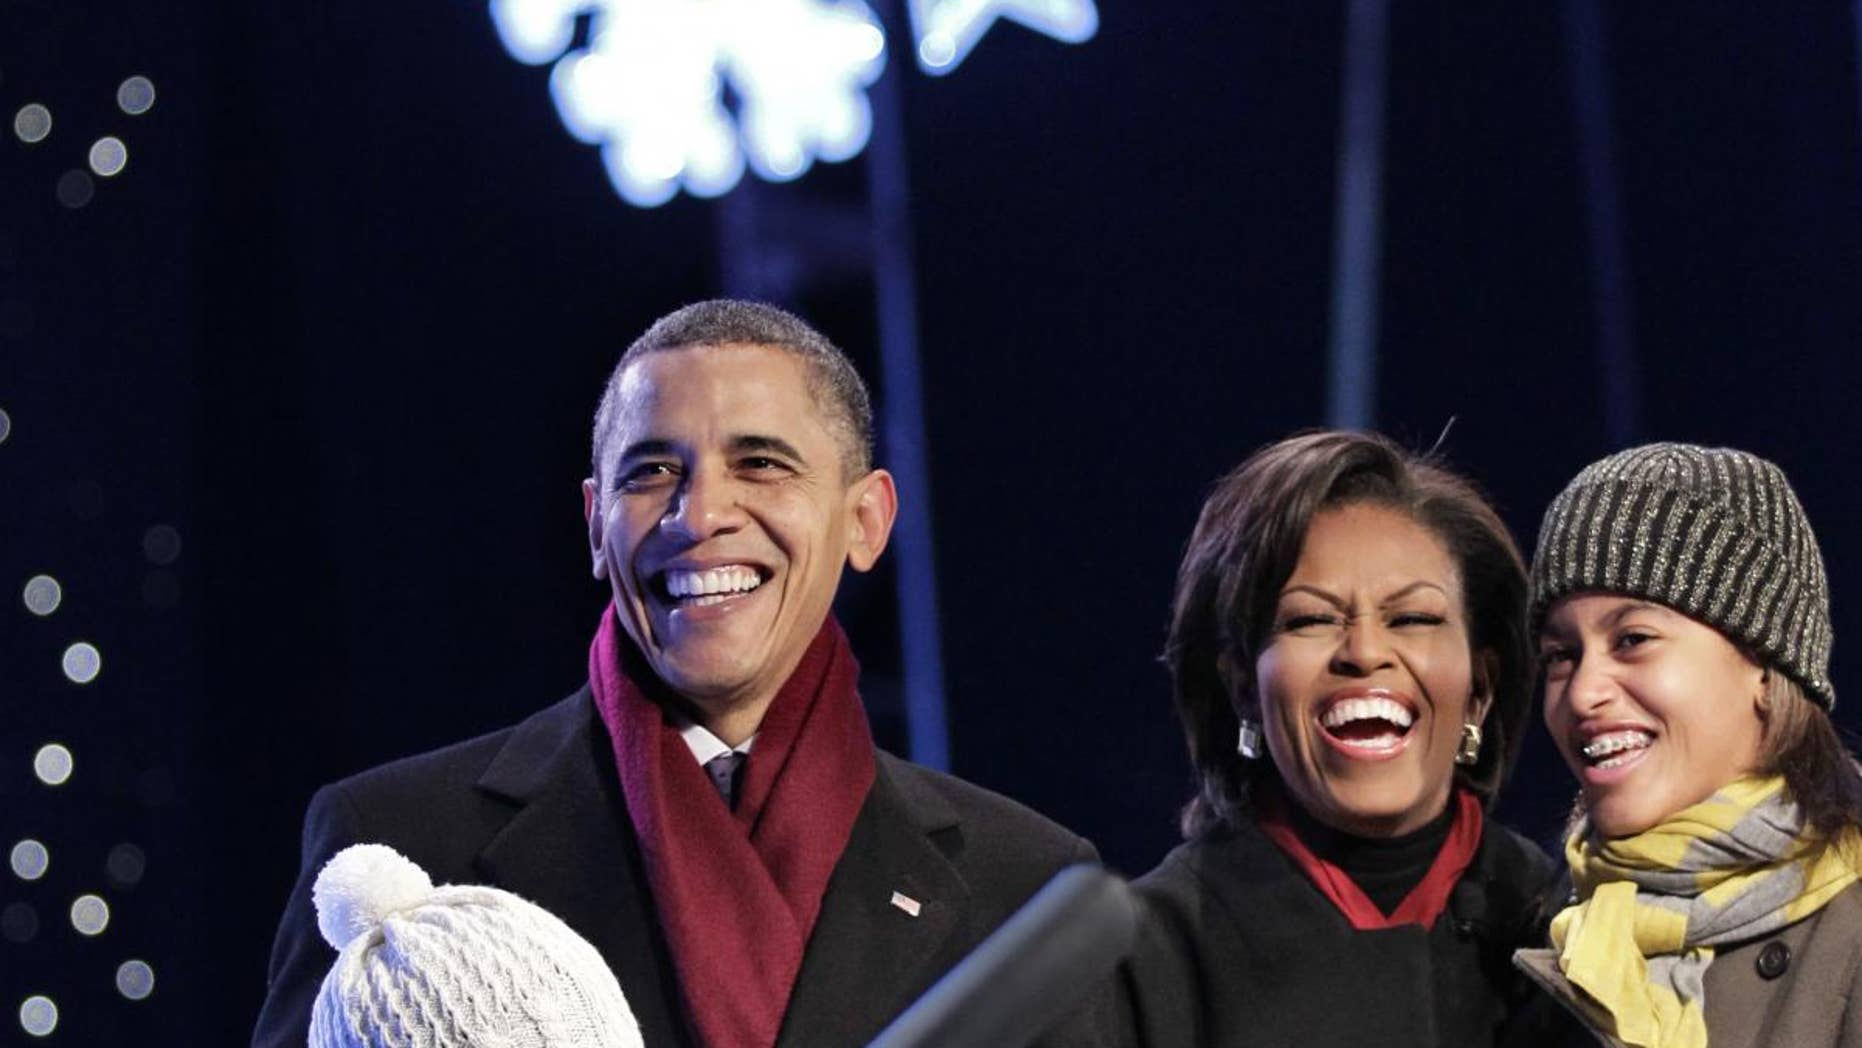 President Barack Obama, with first lady Michelle Obama and daughters Malia, 12, and Sasha, 9, smile as they push the button to light up the National Christmas Tree on the Ellipse, just south of the White House, in Washington, Thursday, Dec. 9, 2010. (AP Photo/J. Scott Applewhite)